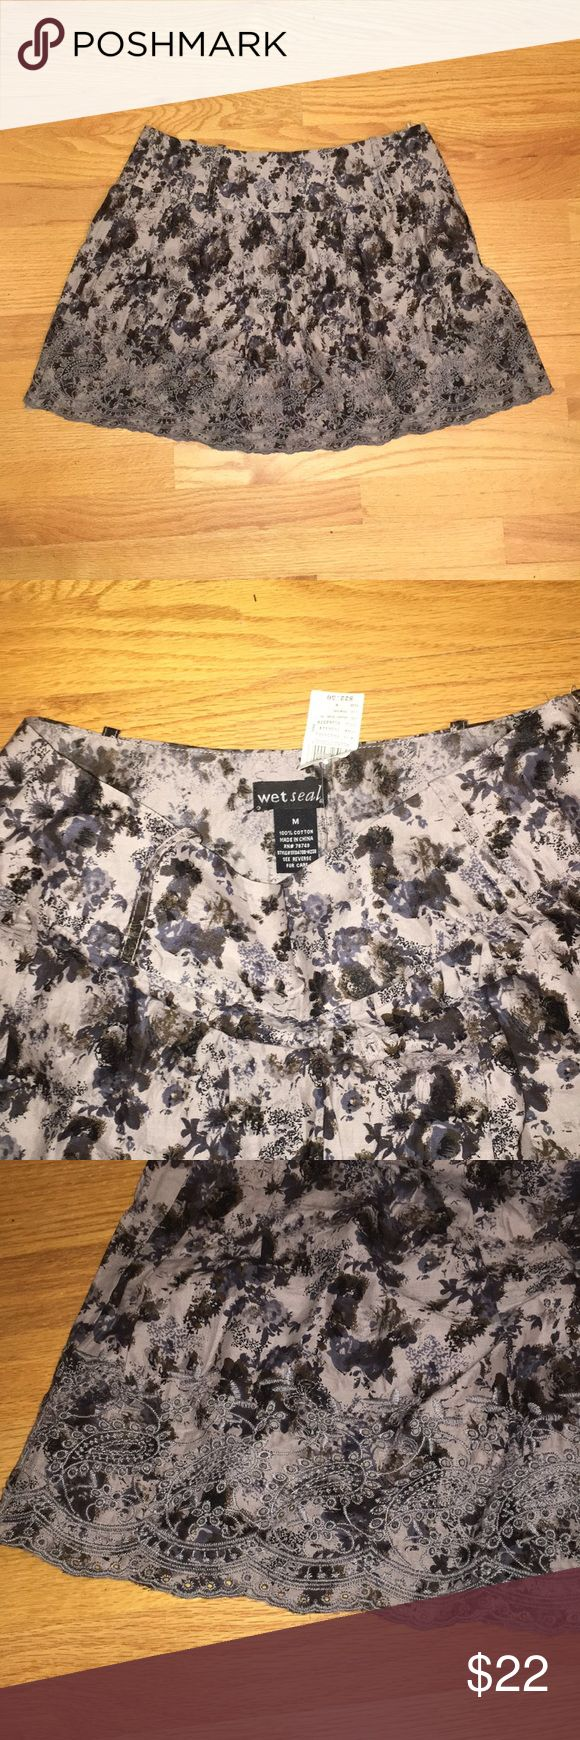 NWT wet seal floral mini skirt NWT wet seal floral mini skirt with embroidered lace pattern along hem Wet Seal Skirts Mini